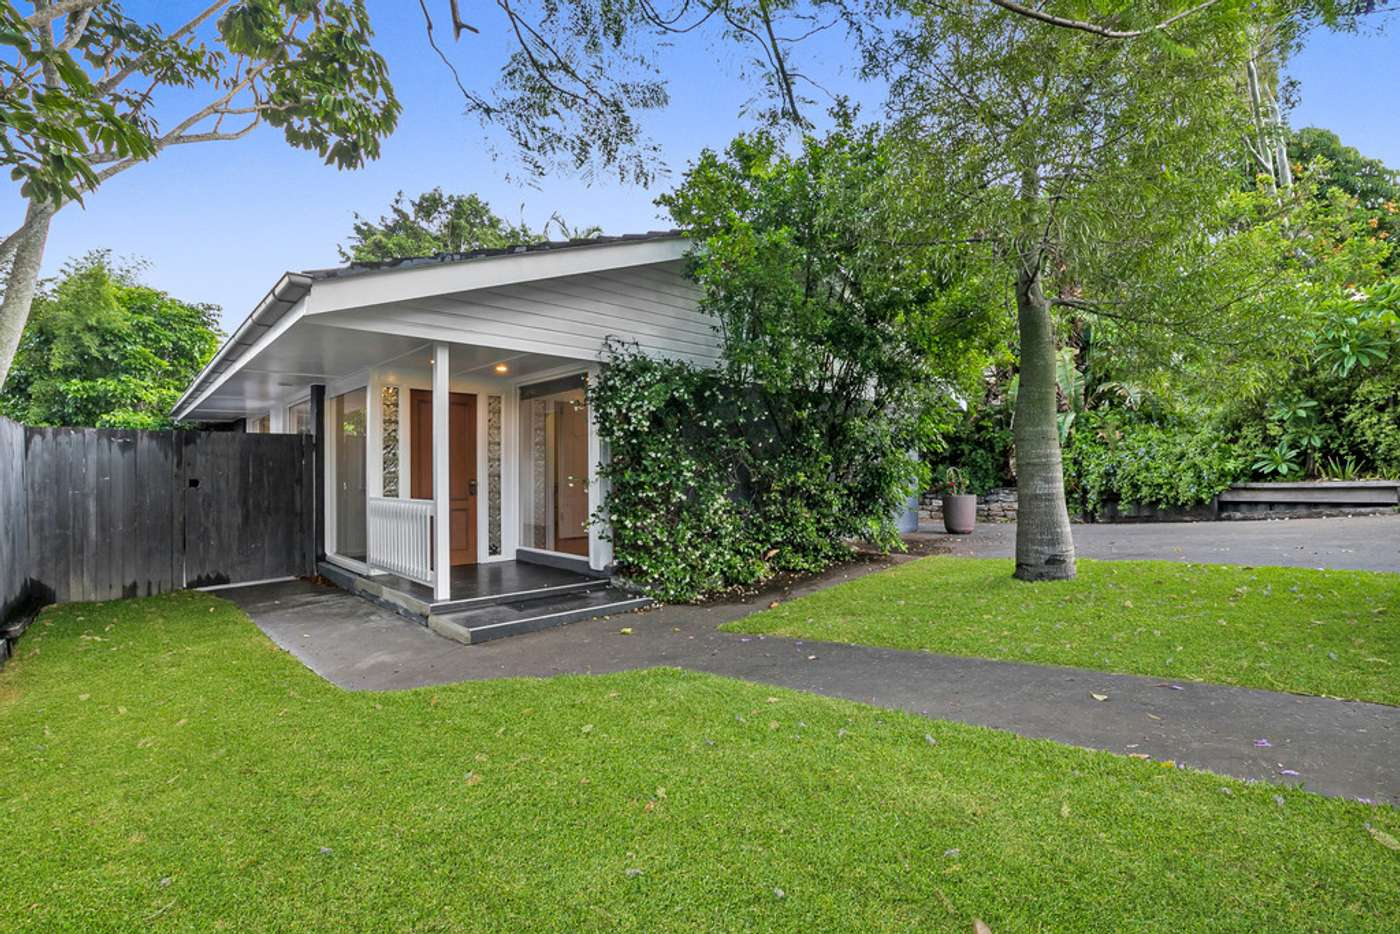 Main view of Homely house listing, 72 Marshall Lane, Kenmore QLD 4069